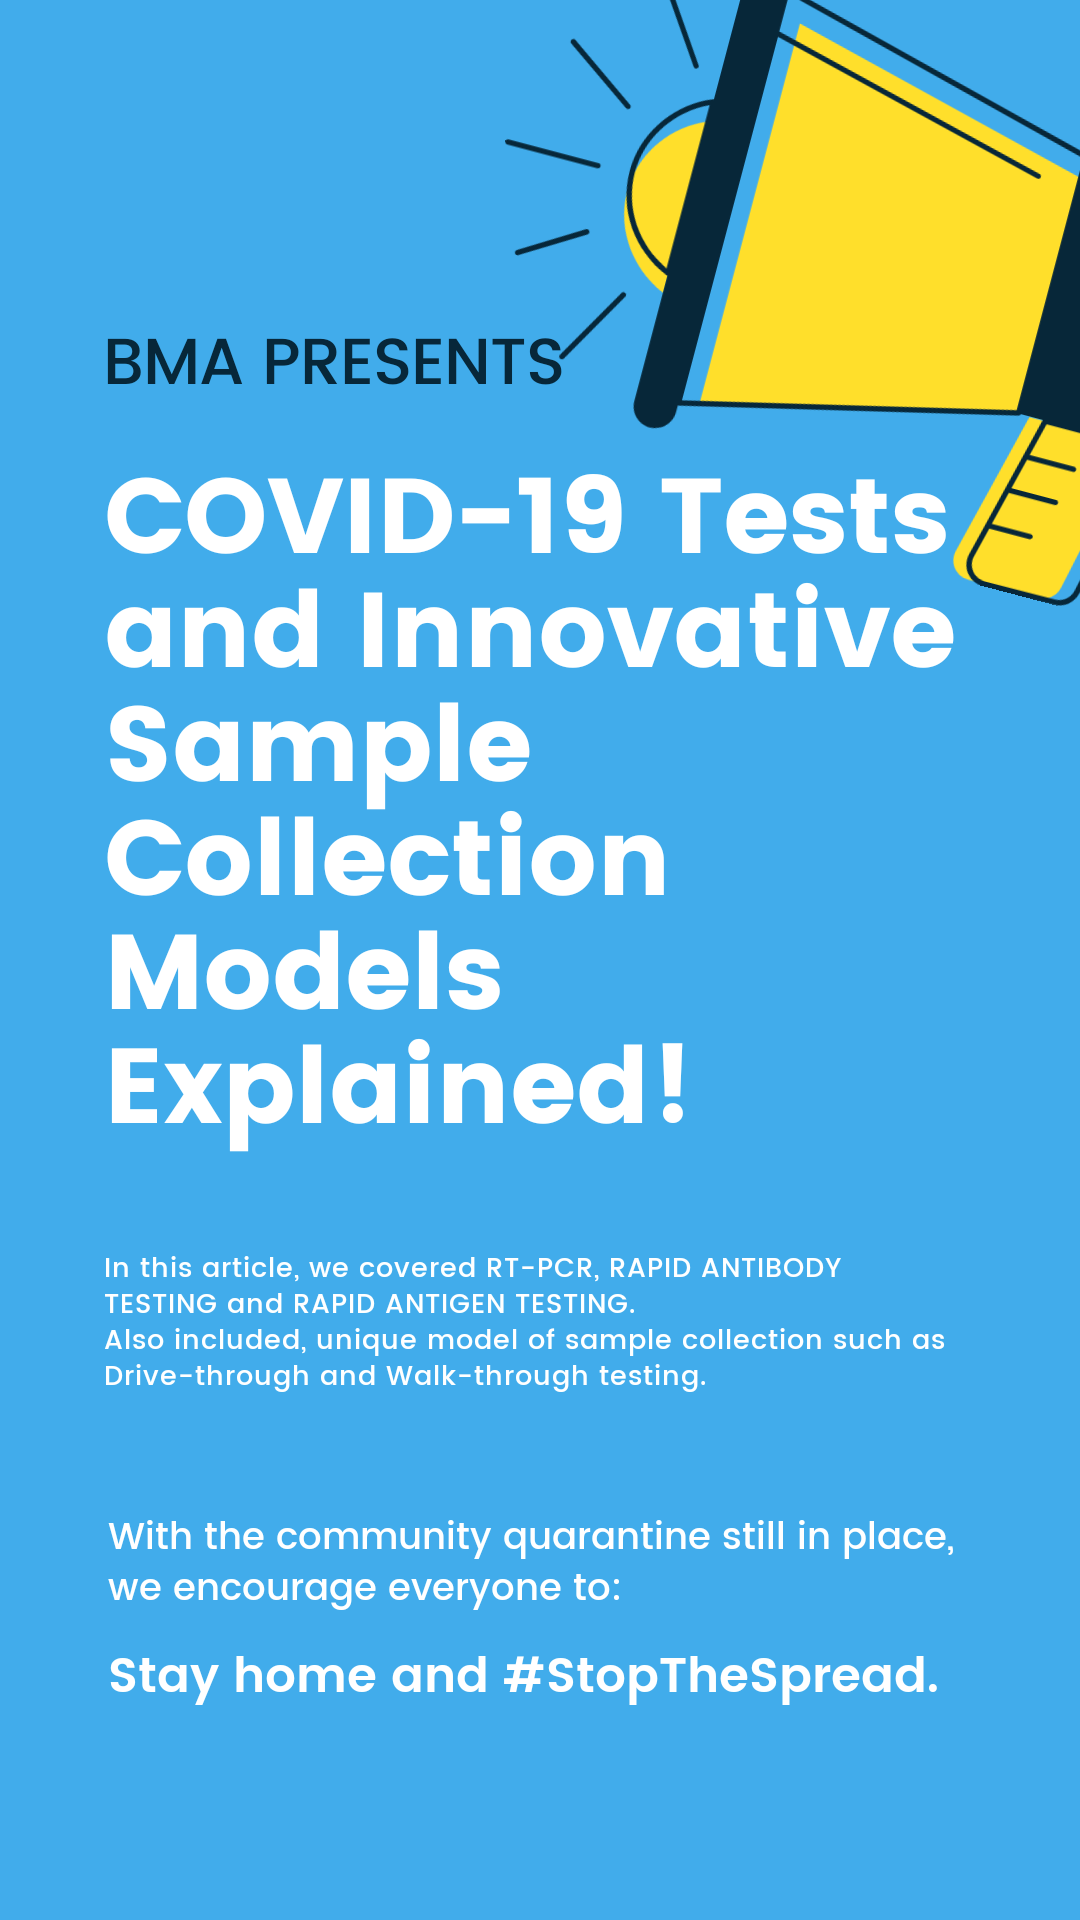 Covid 19 Tests and Innovative Sample Collection